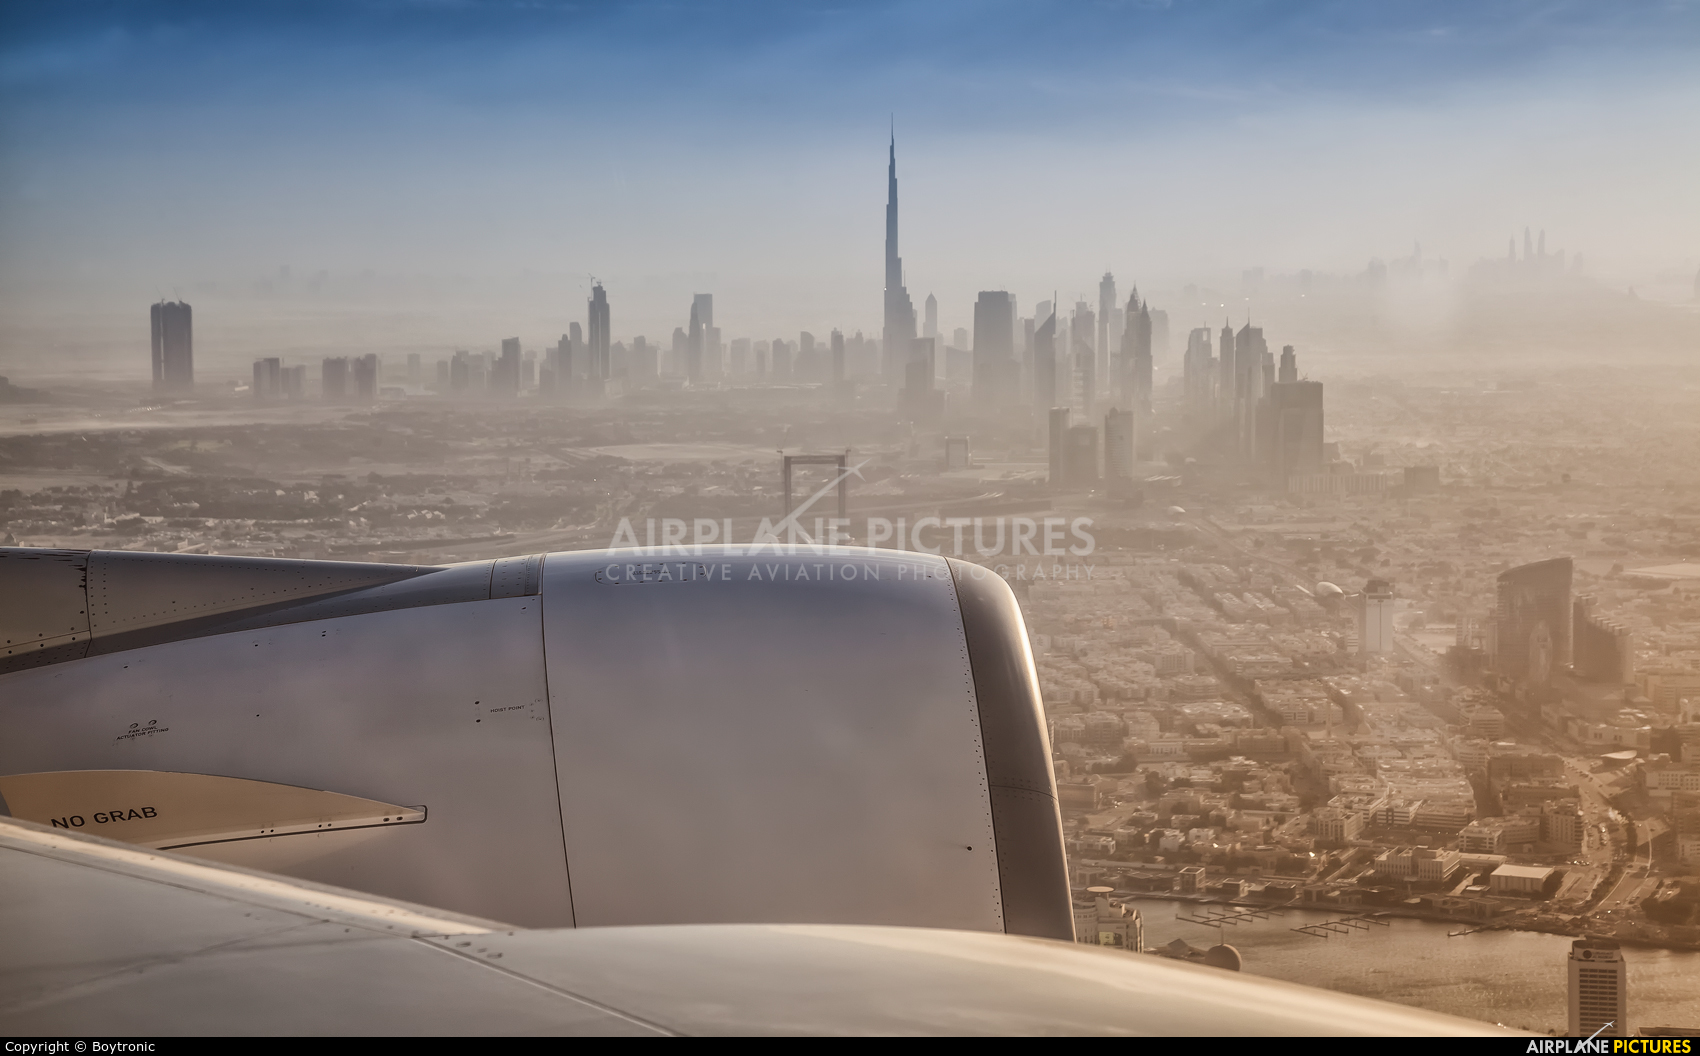 Emirates Airlines A6-EEV aircraft at In Flight - UAE